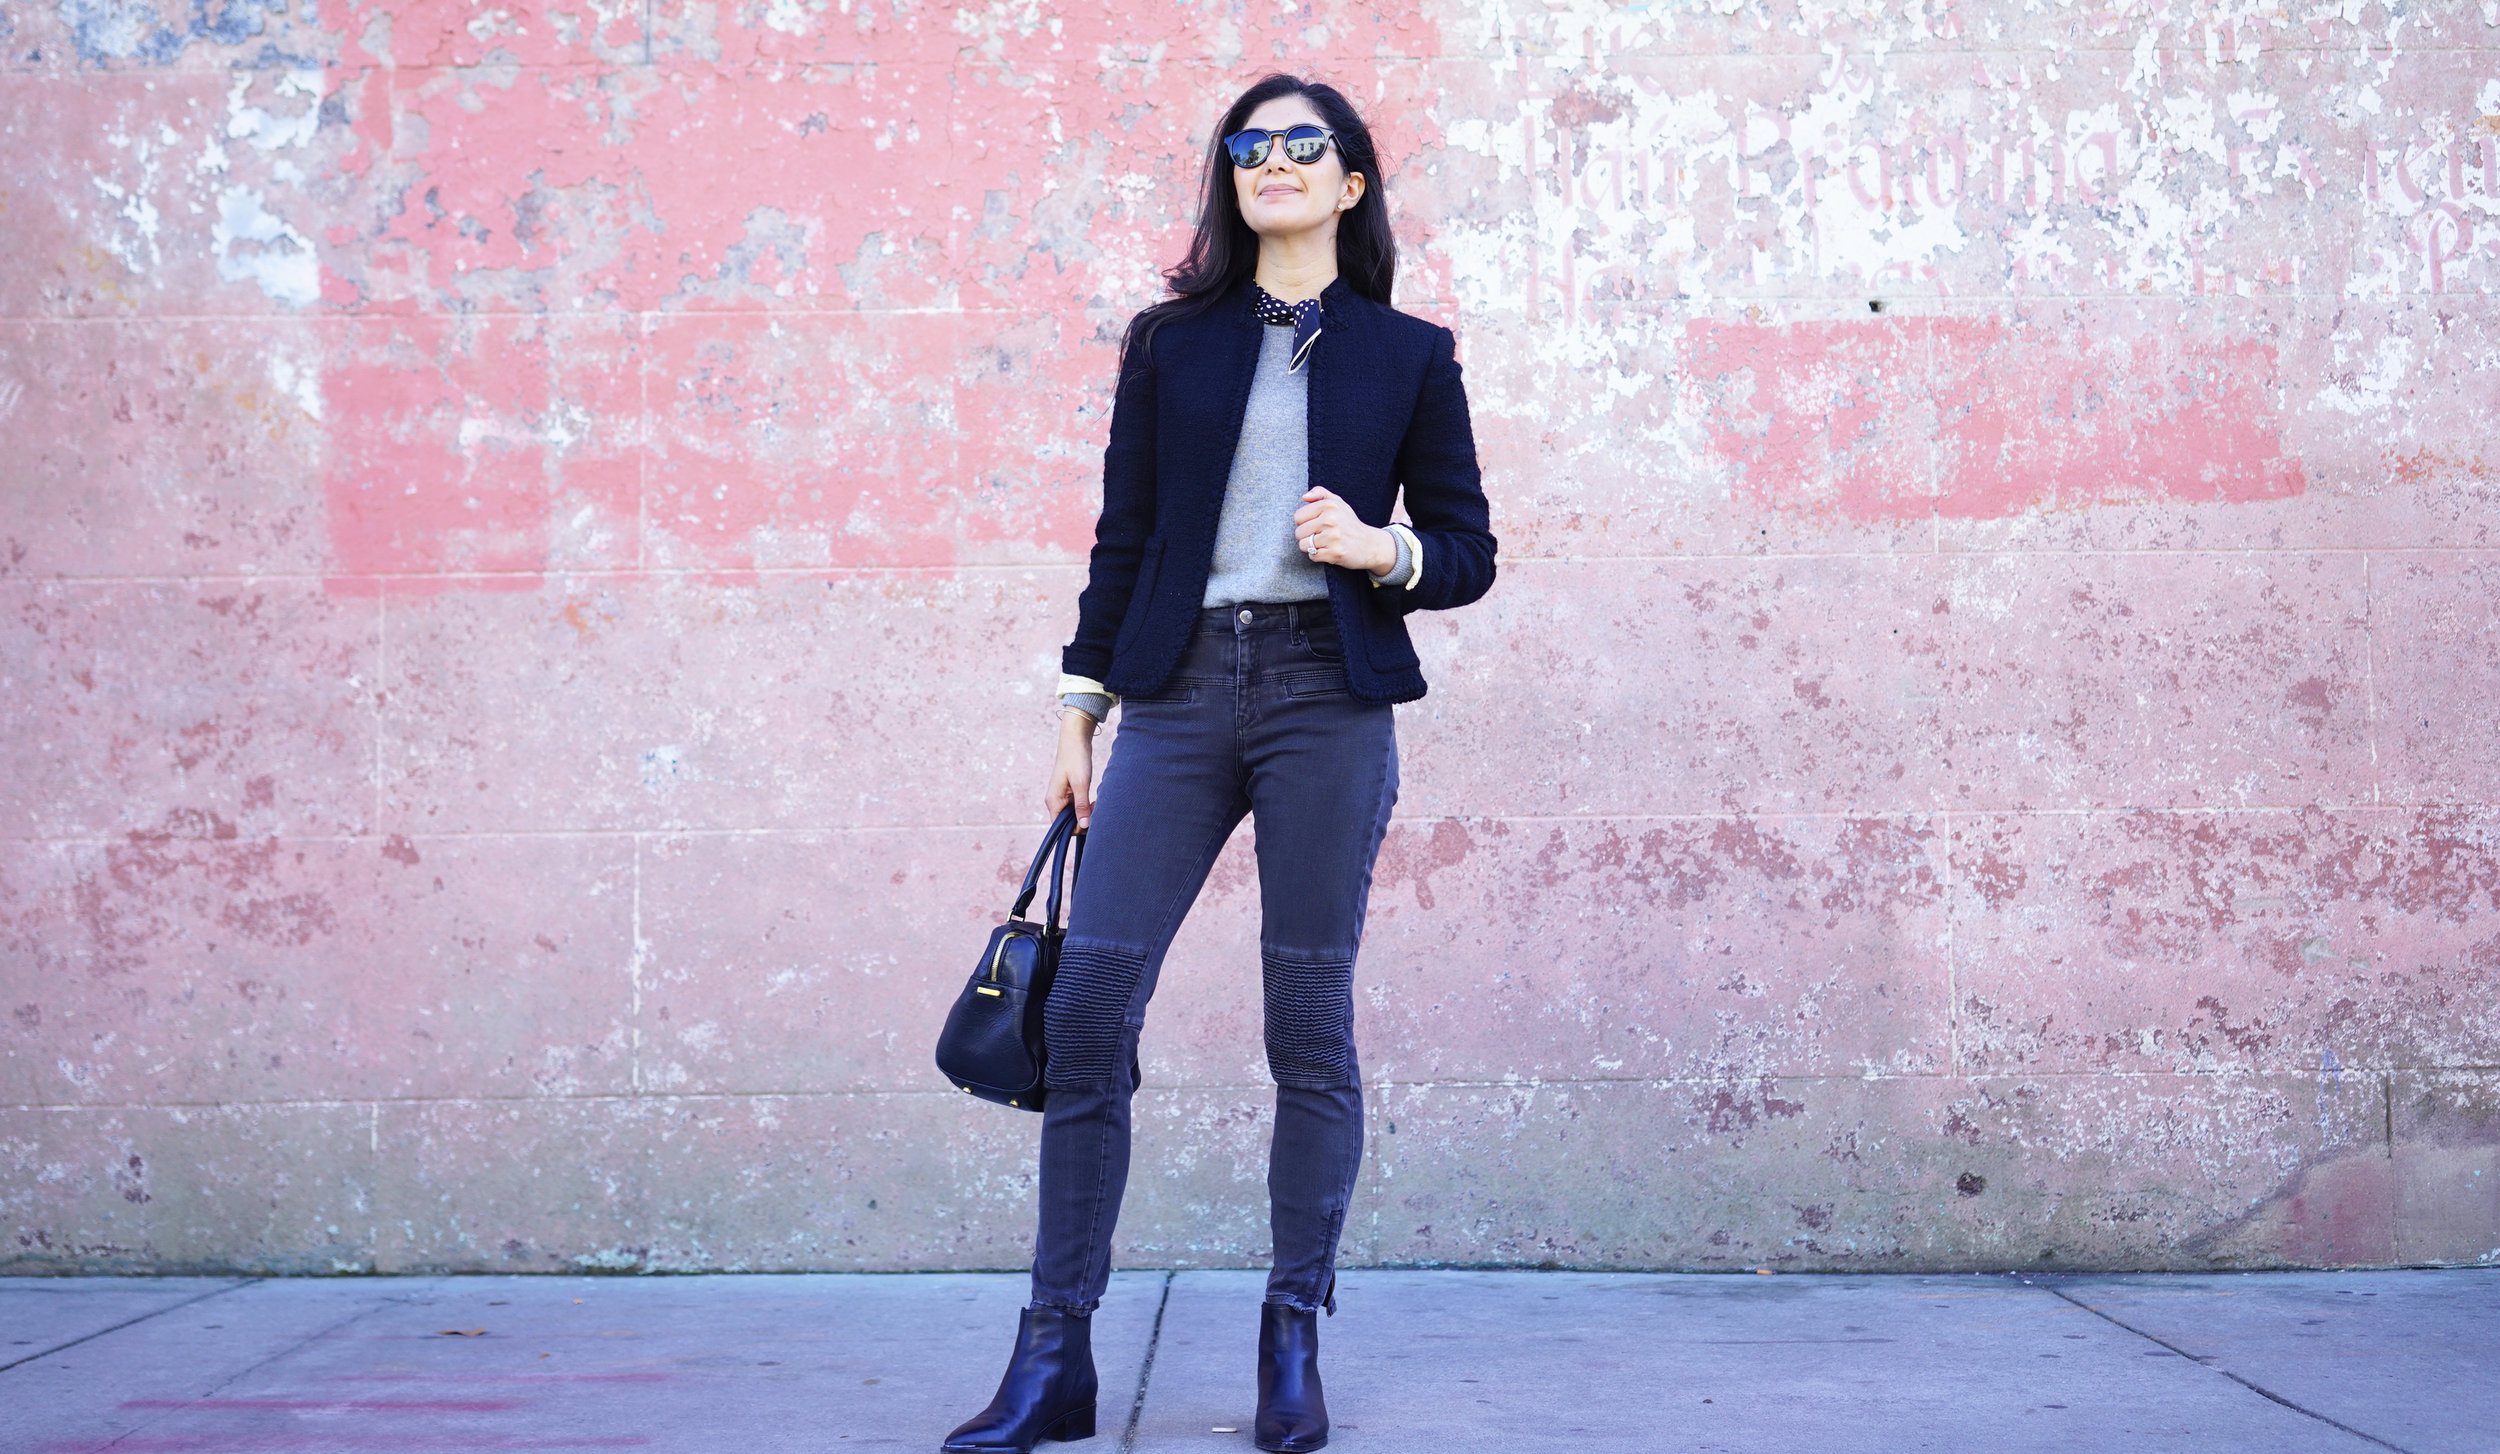 jcrew-tweed-jacket-zara-moto-jeans-silk-scarf-winter-capsule-wardrobe-marc-fisher-yale-dior-sunglasses-charleston-sc.jpg